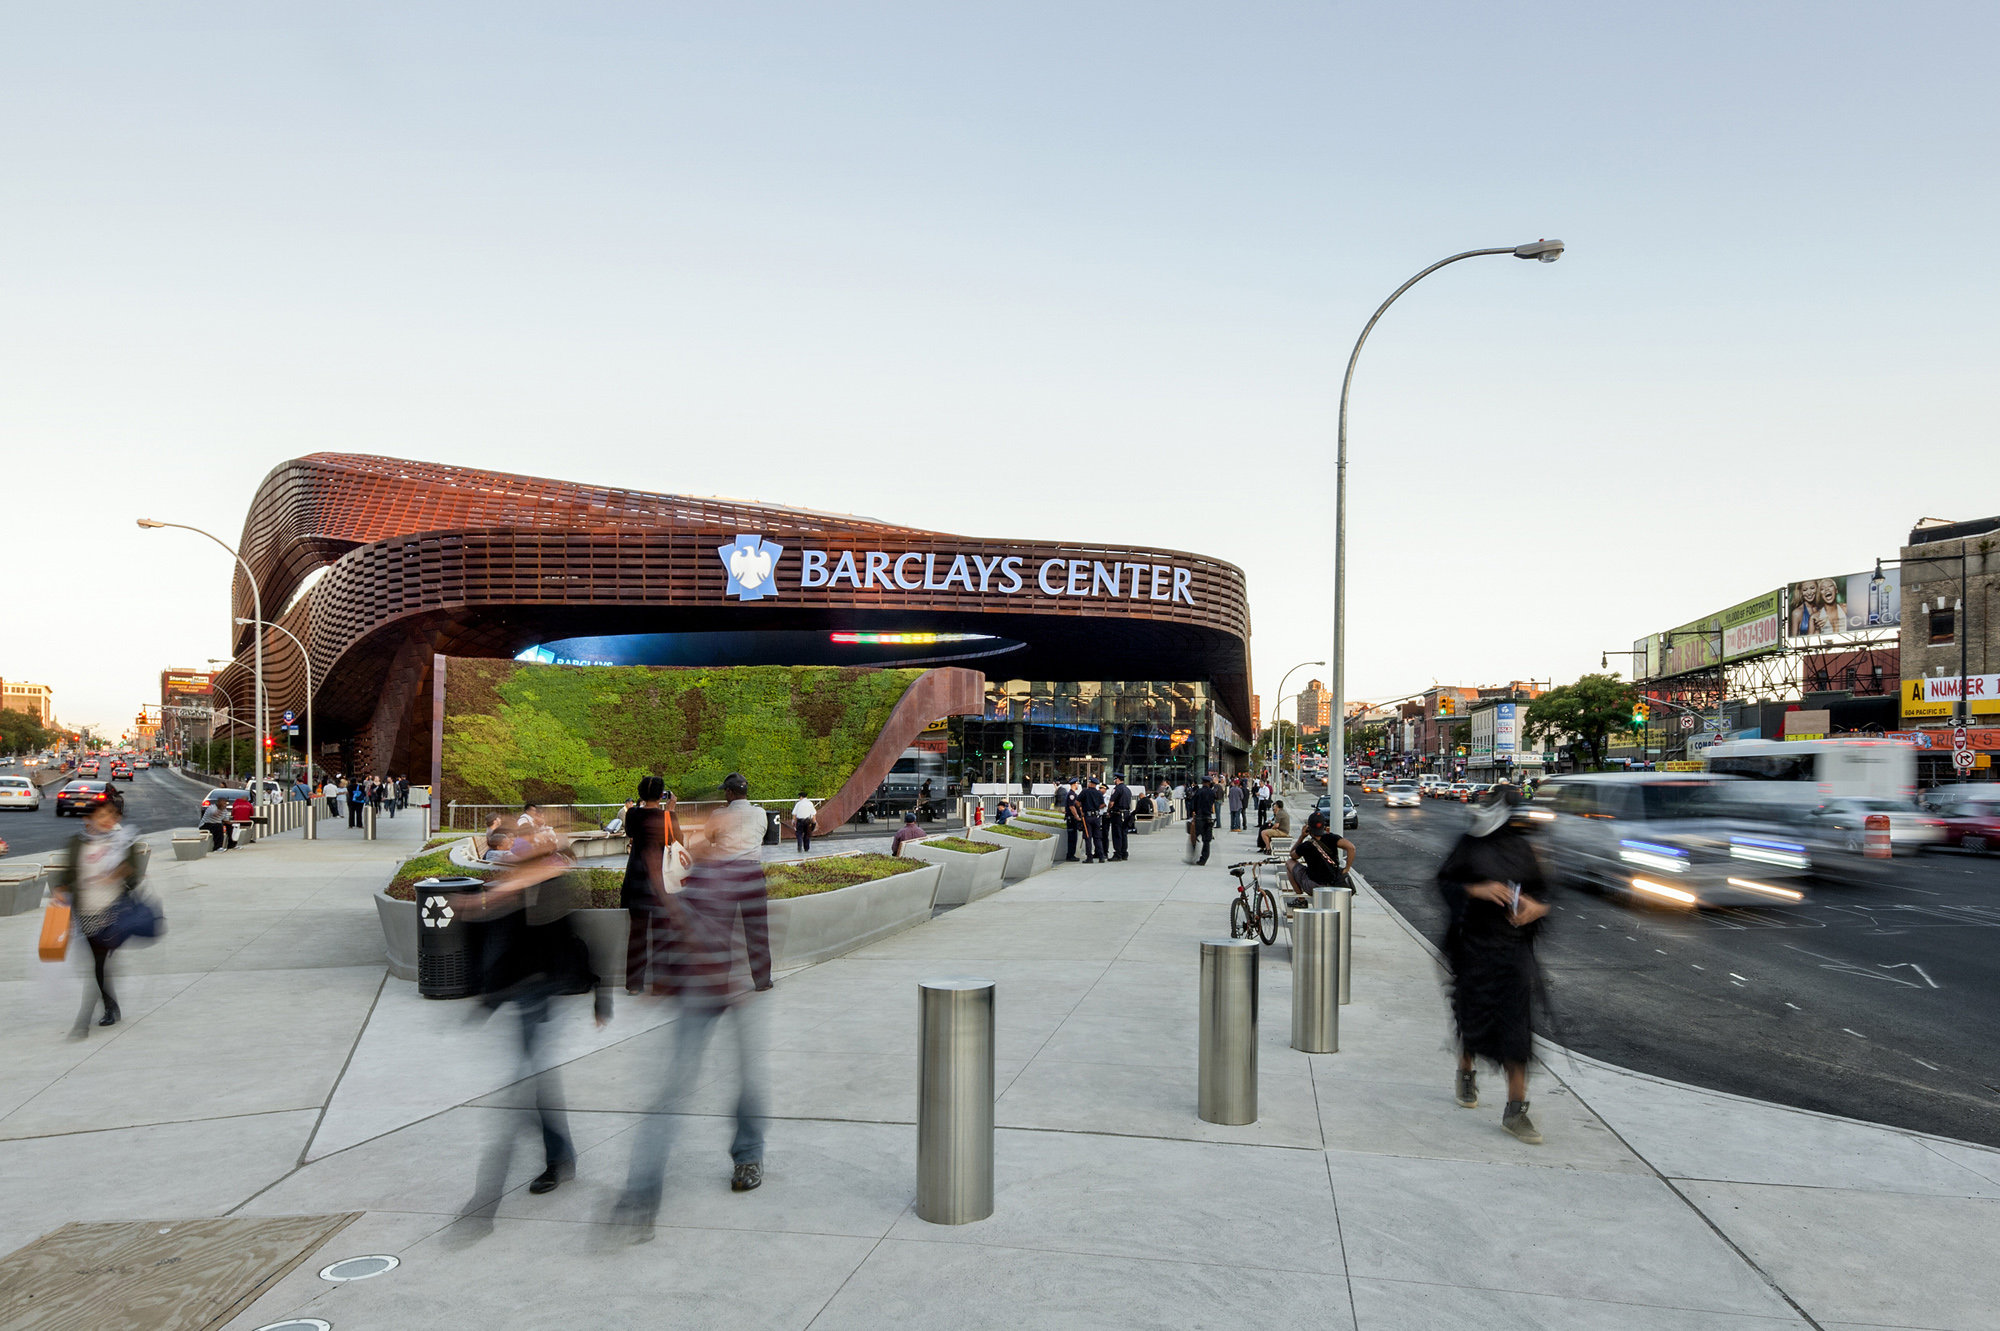 BarclaysCenter_003.jpg